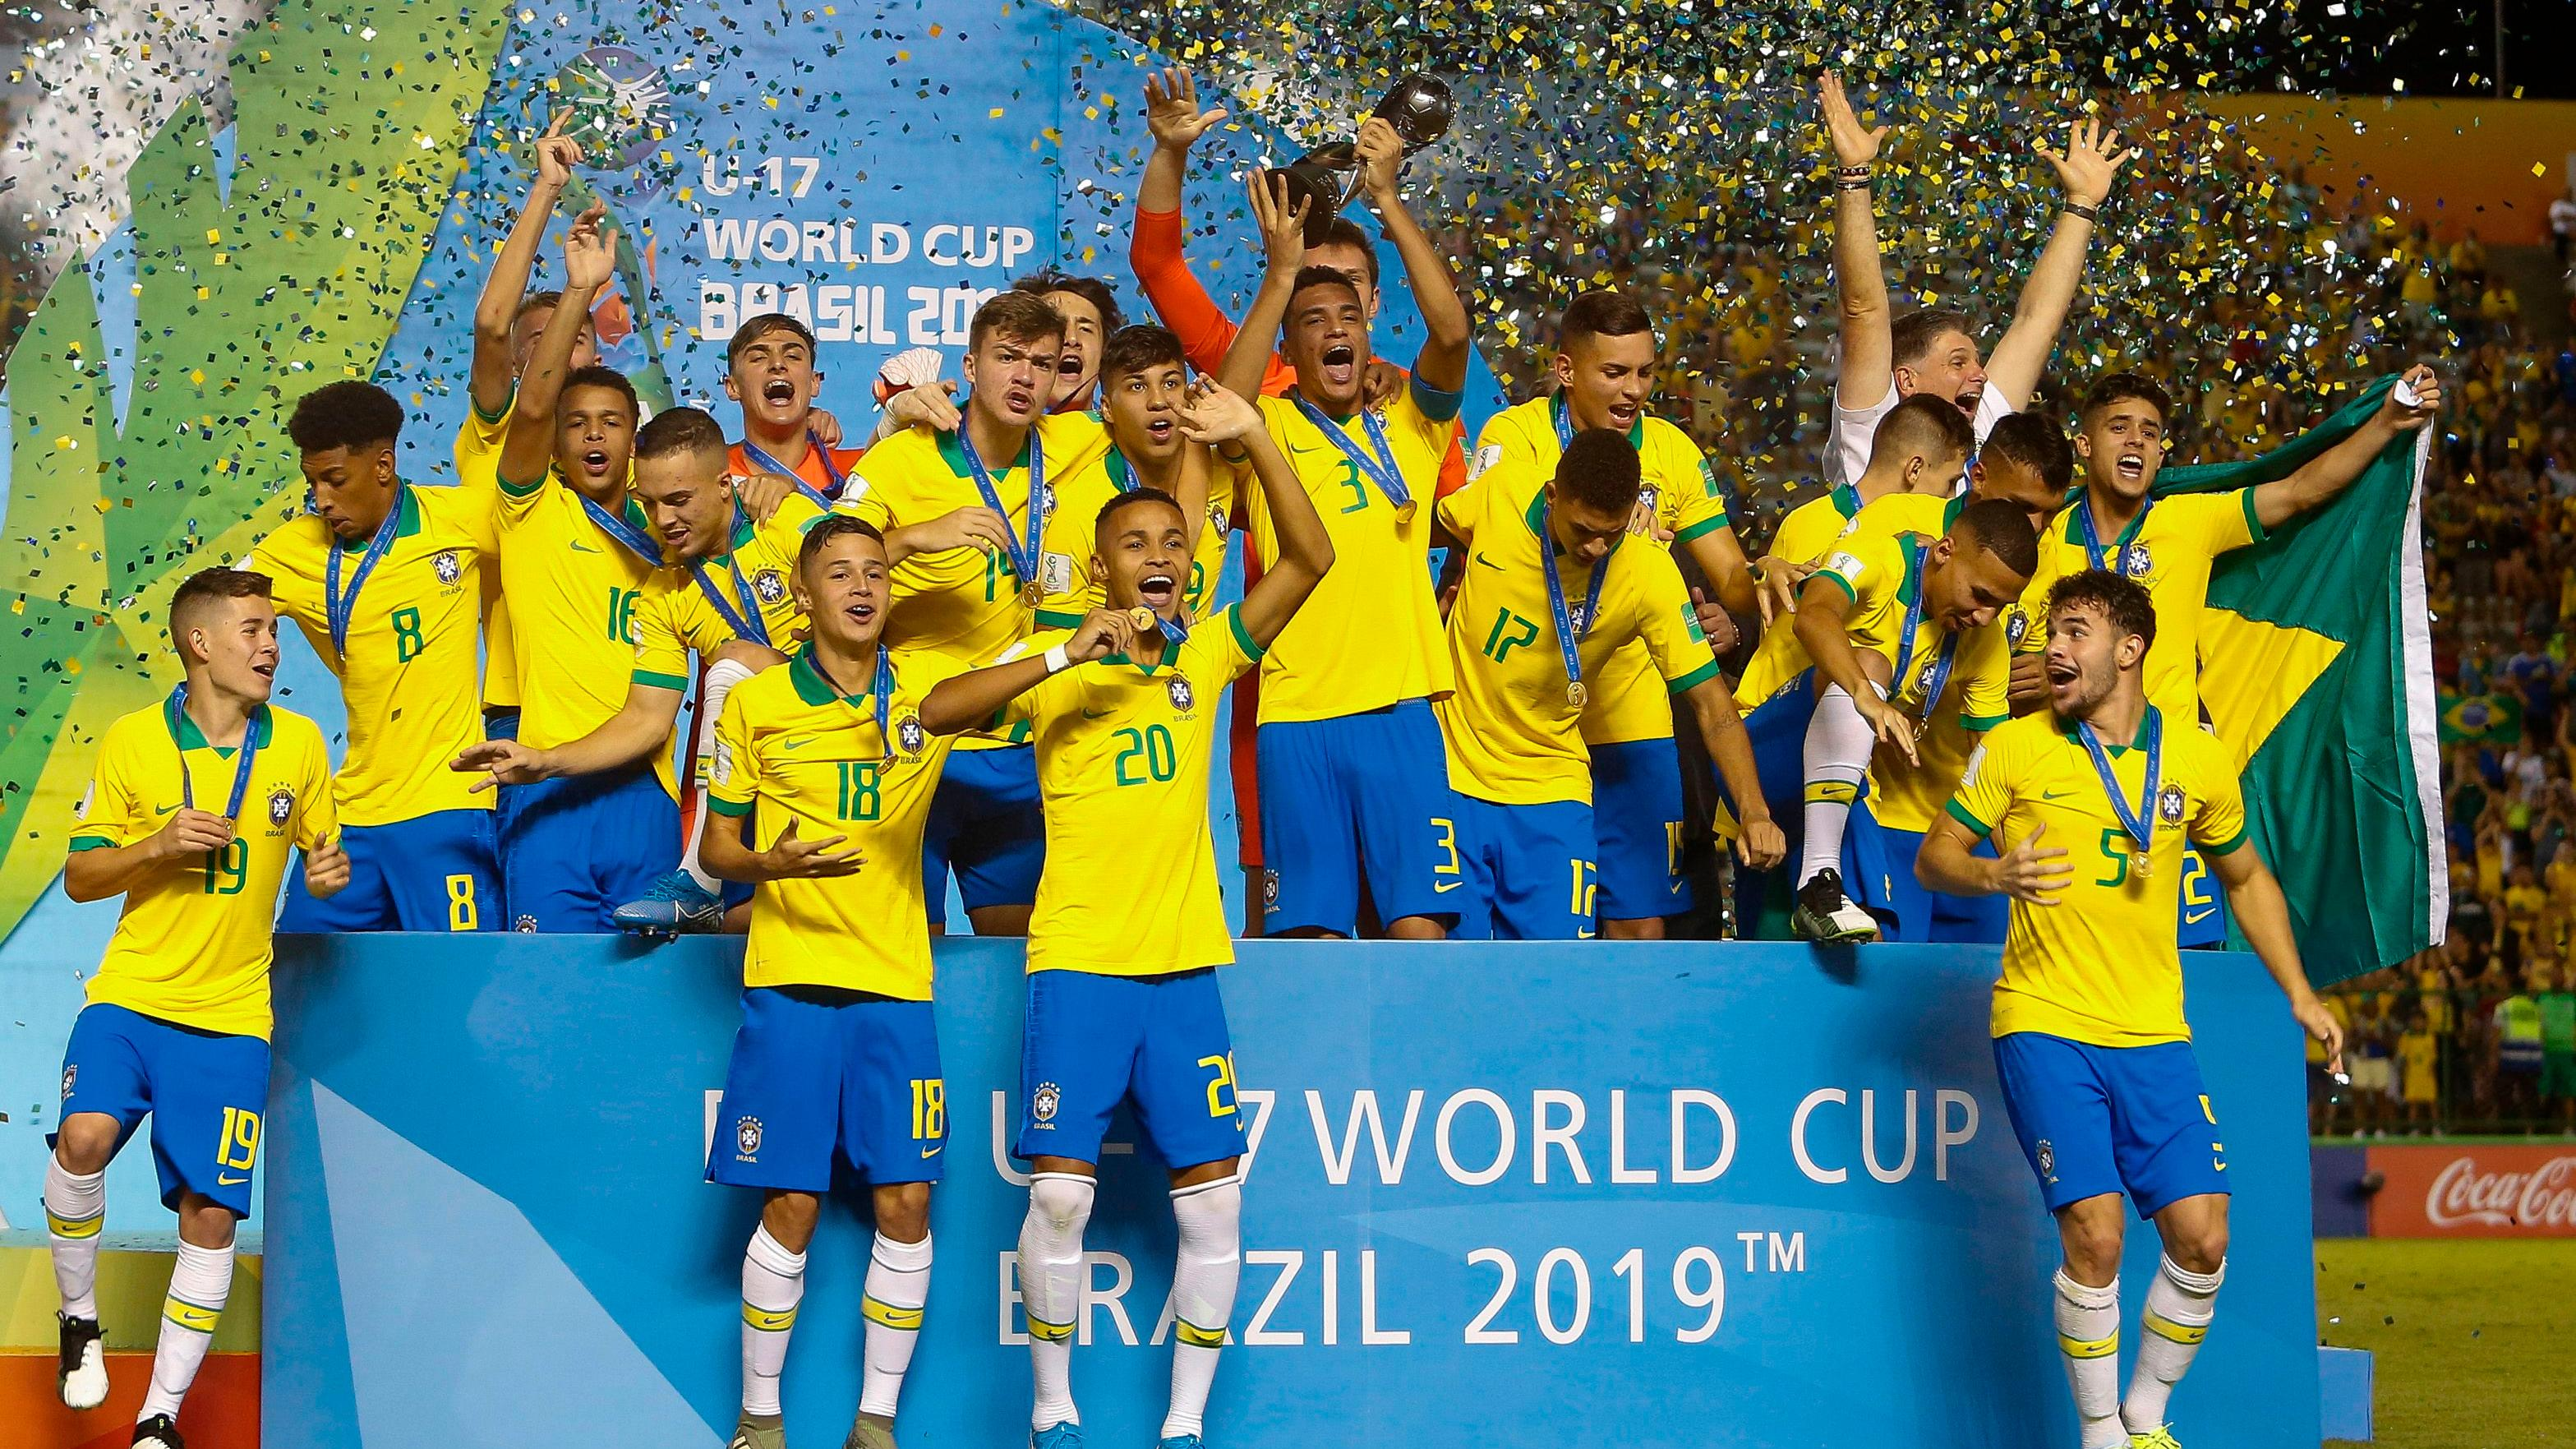 Brazil claim U-17 World Cup title with dramatic win over Mexico - Yahoo Sports